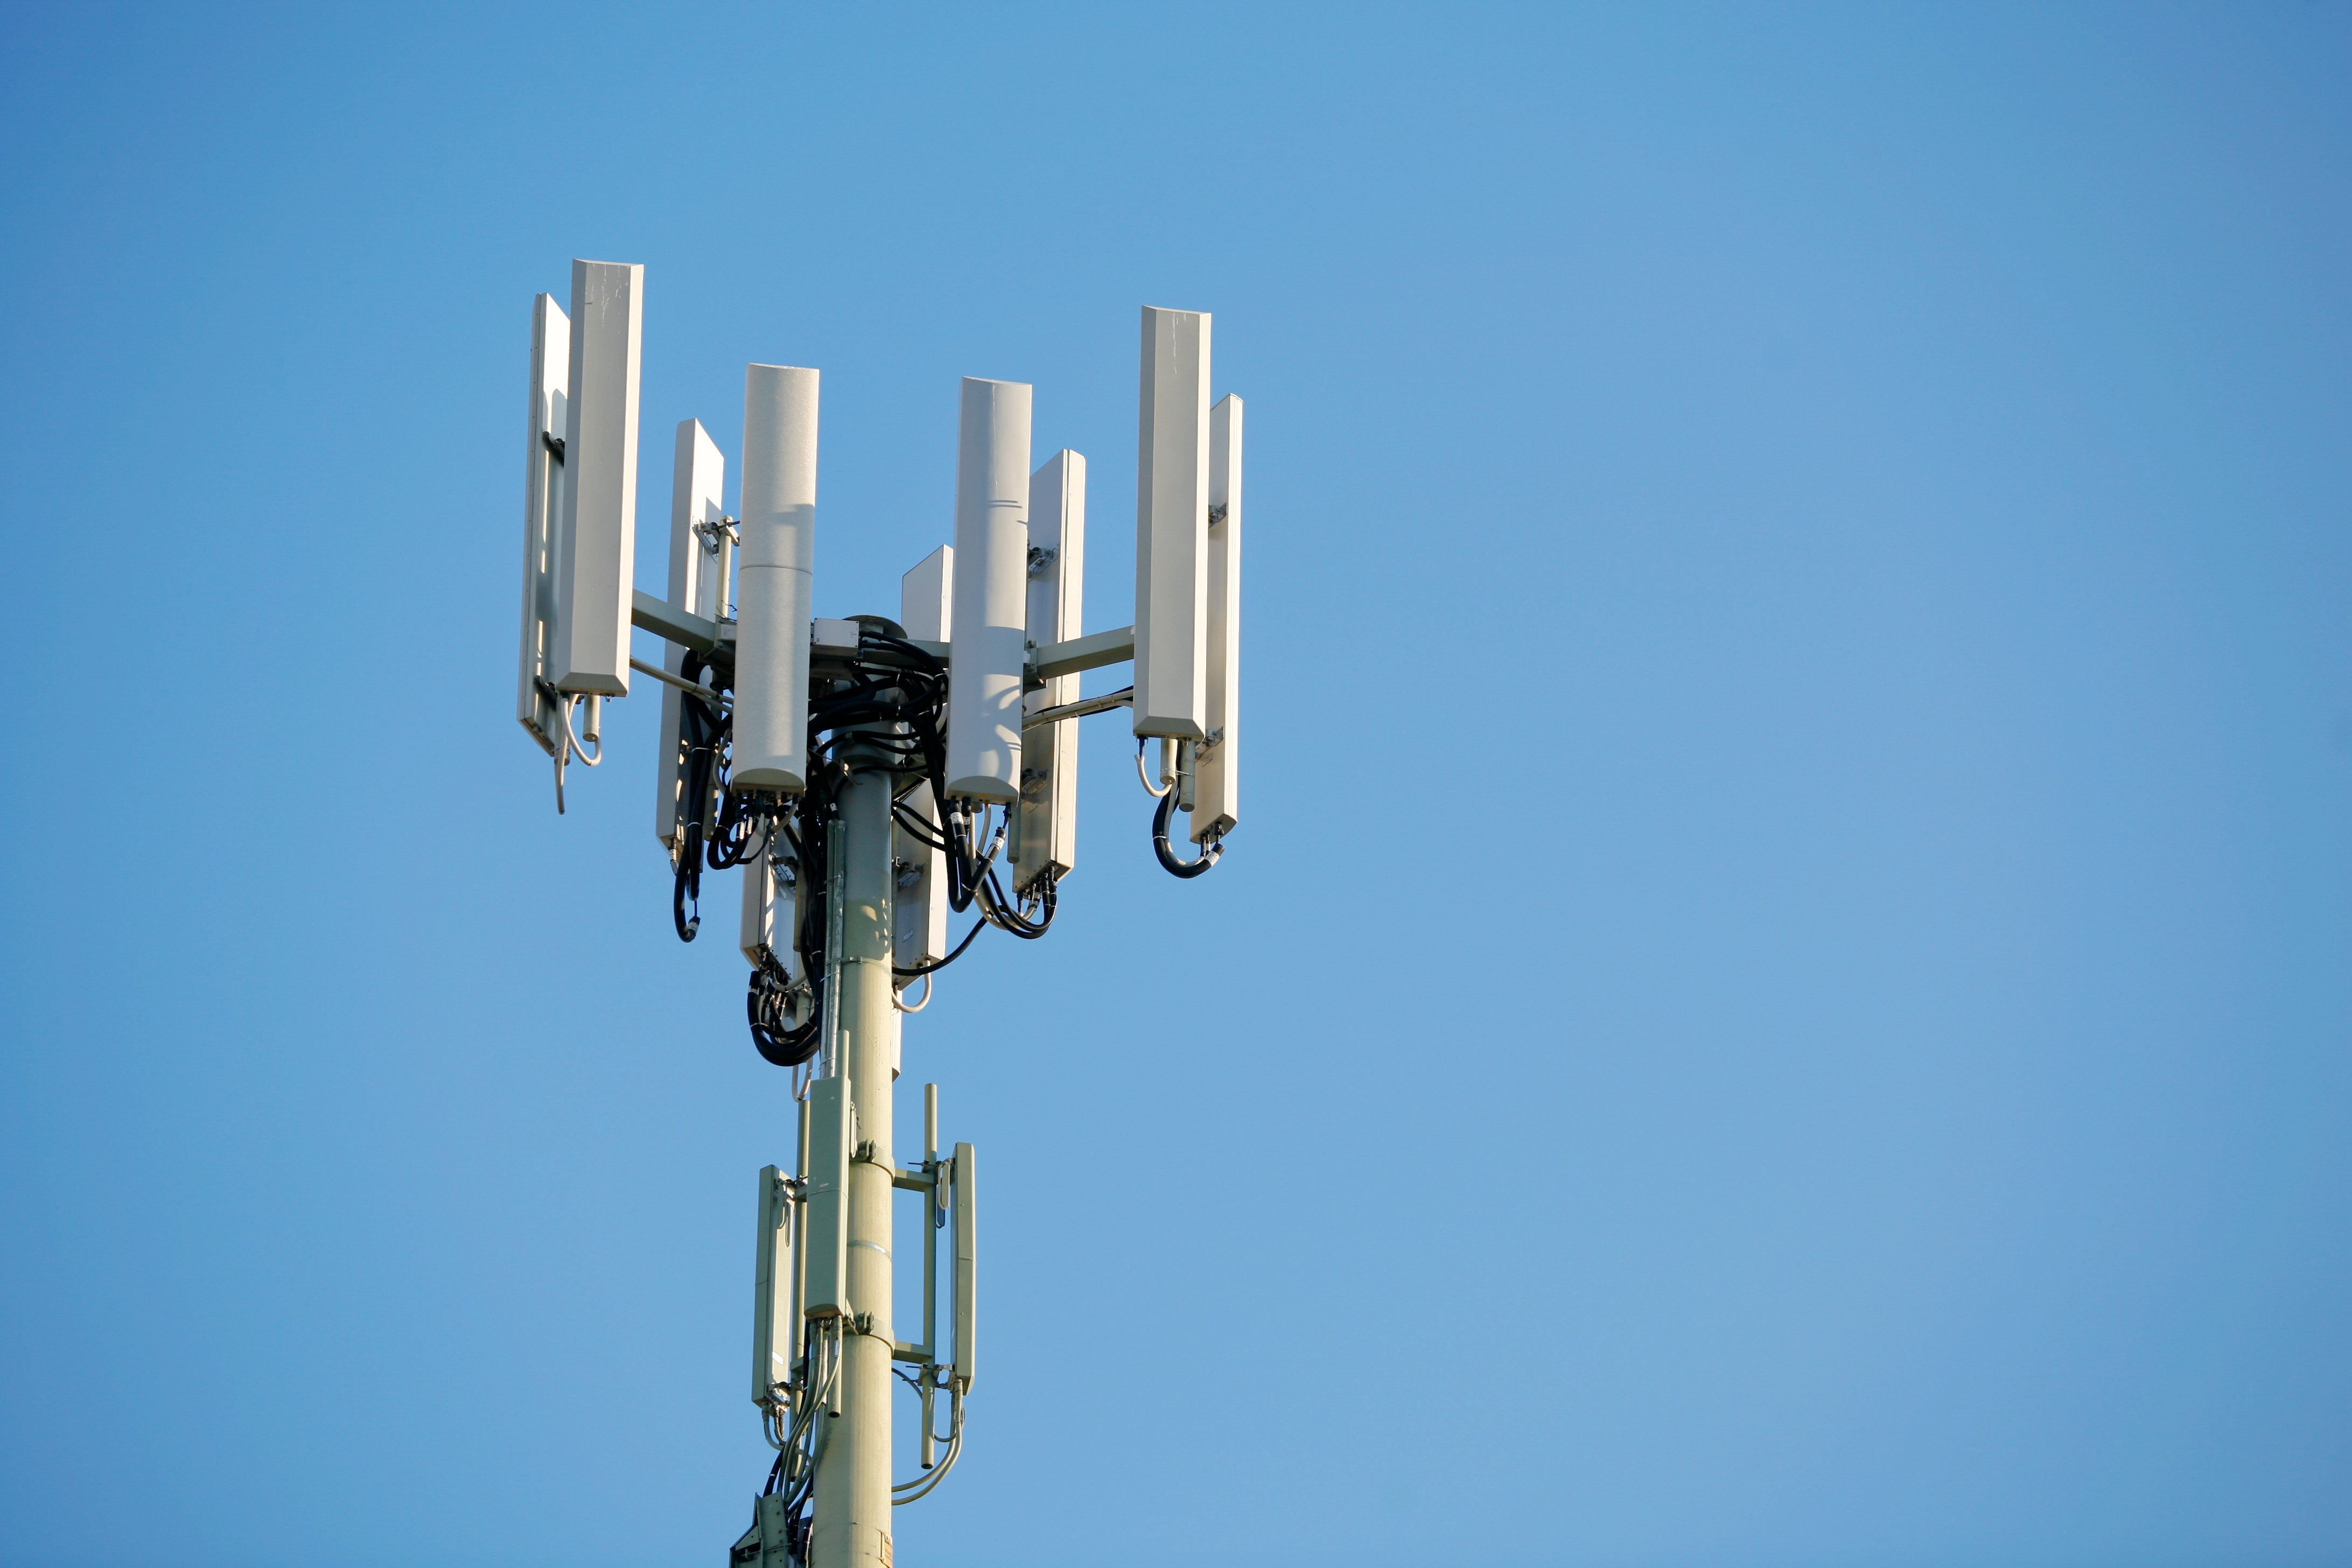 7 Reasons Why You Should Consult A Cell Tower Expert